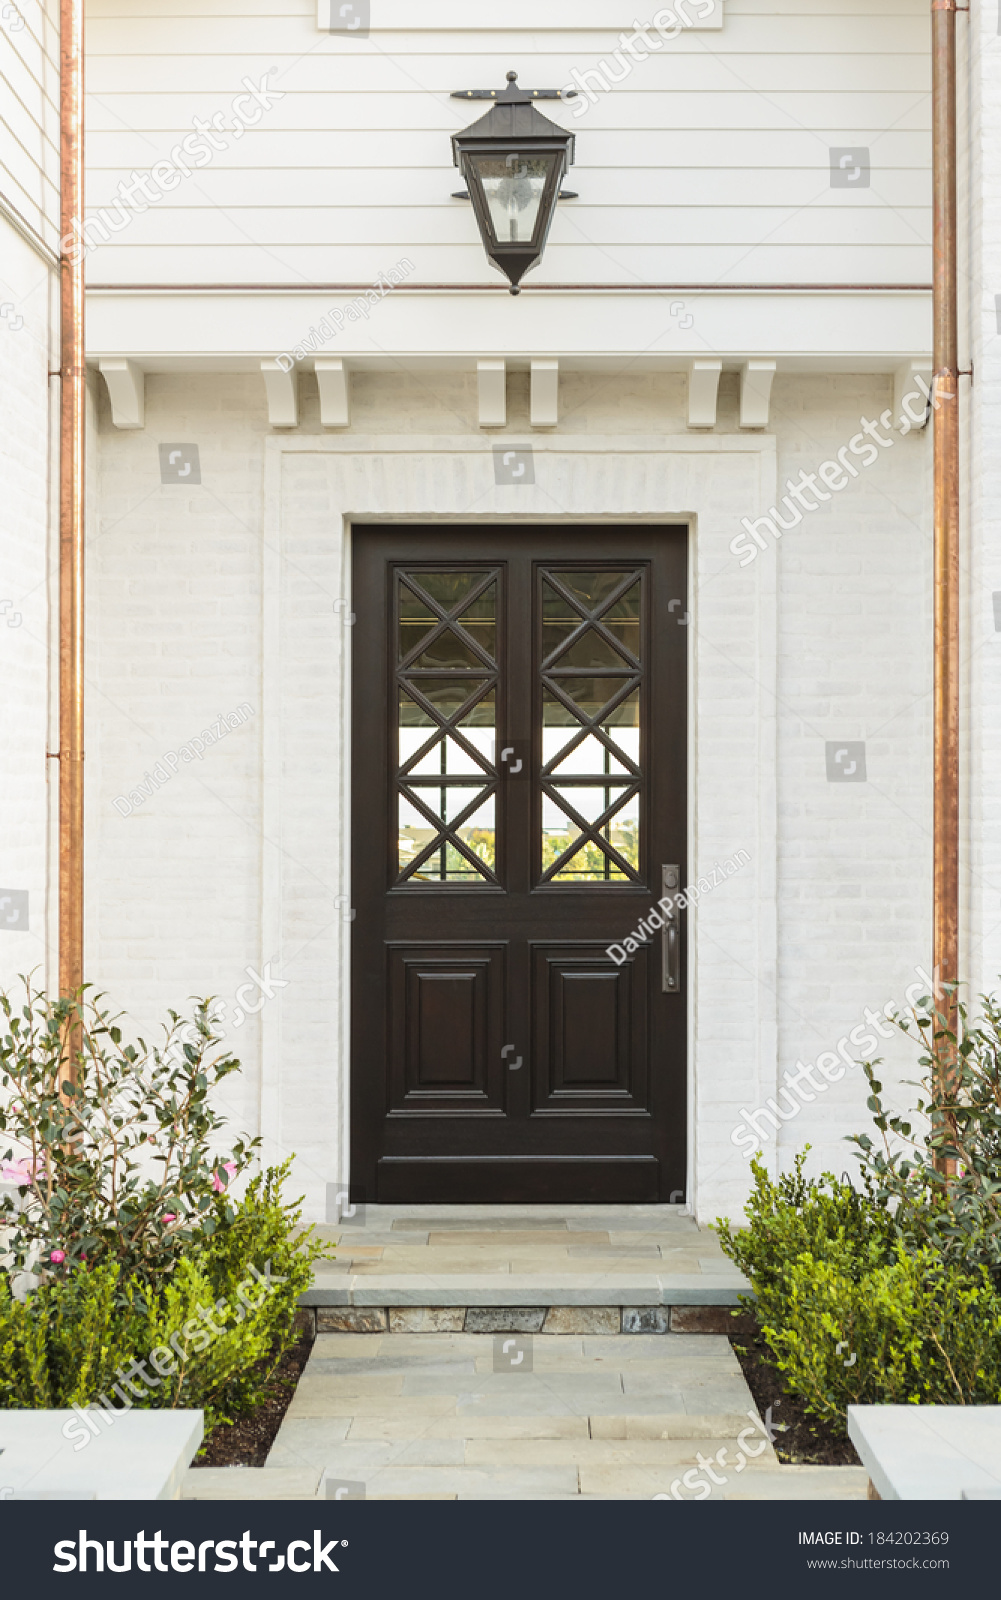 Intricate Design On Wooden Front Door Stock Photo (Download Now ...